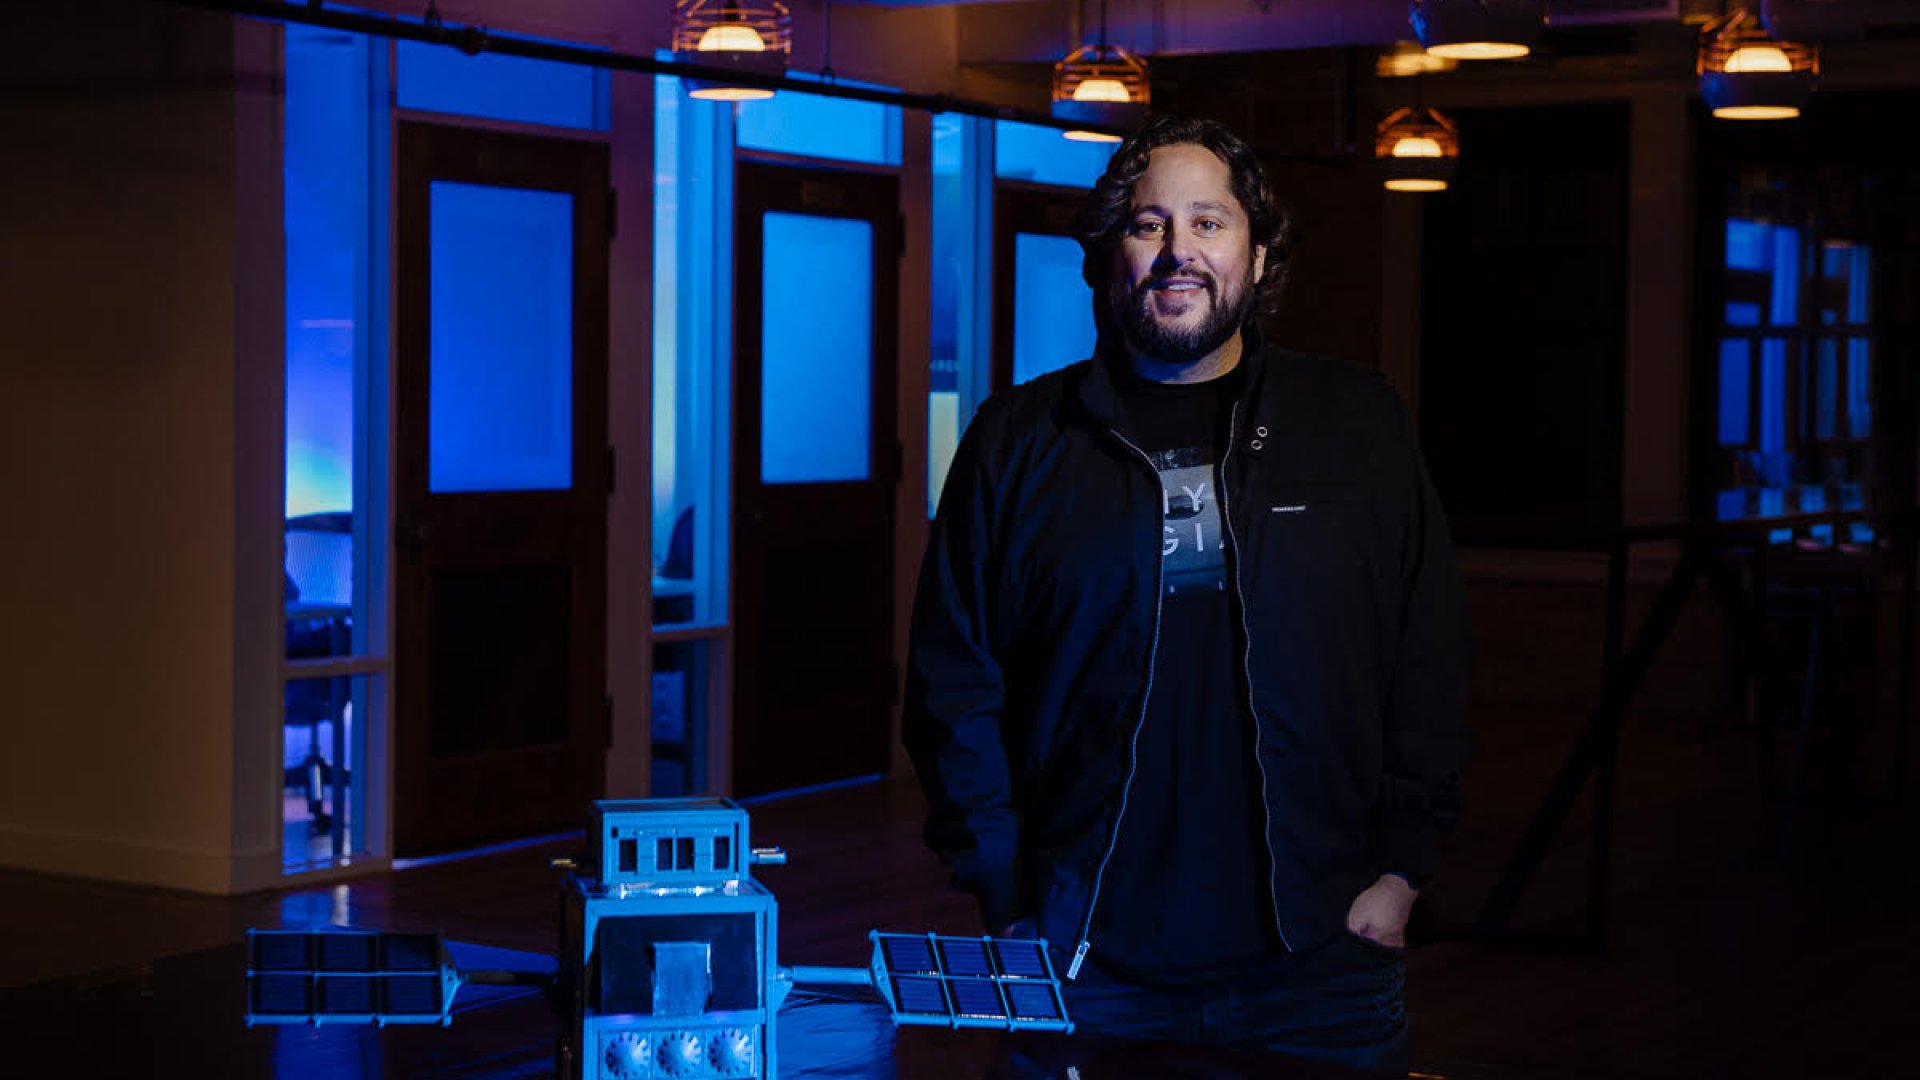 Hypergiant, founded by Ben Lamm, is aiming to disrupt the existing data supply chain to help businesses.